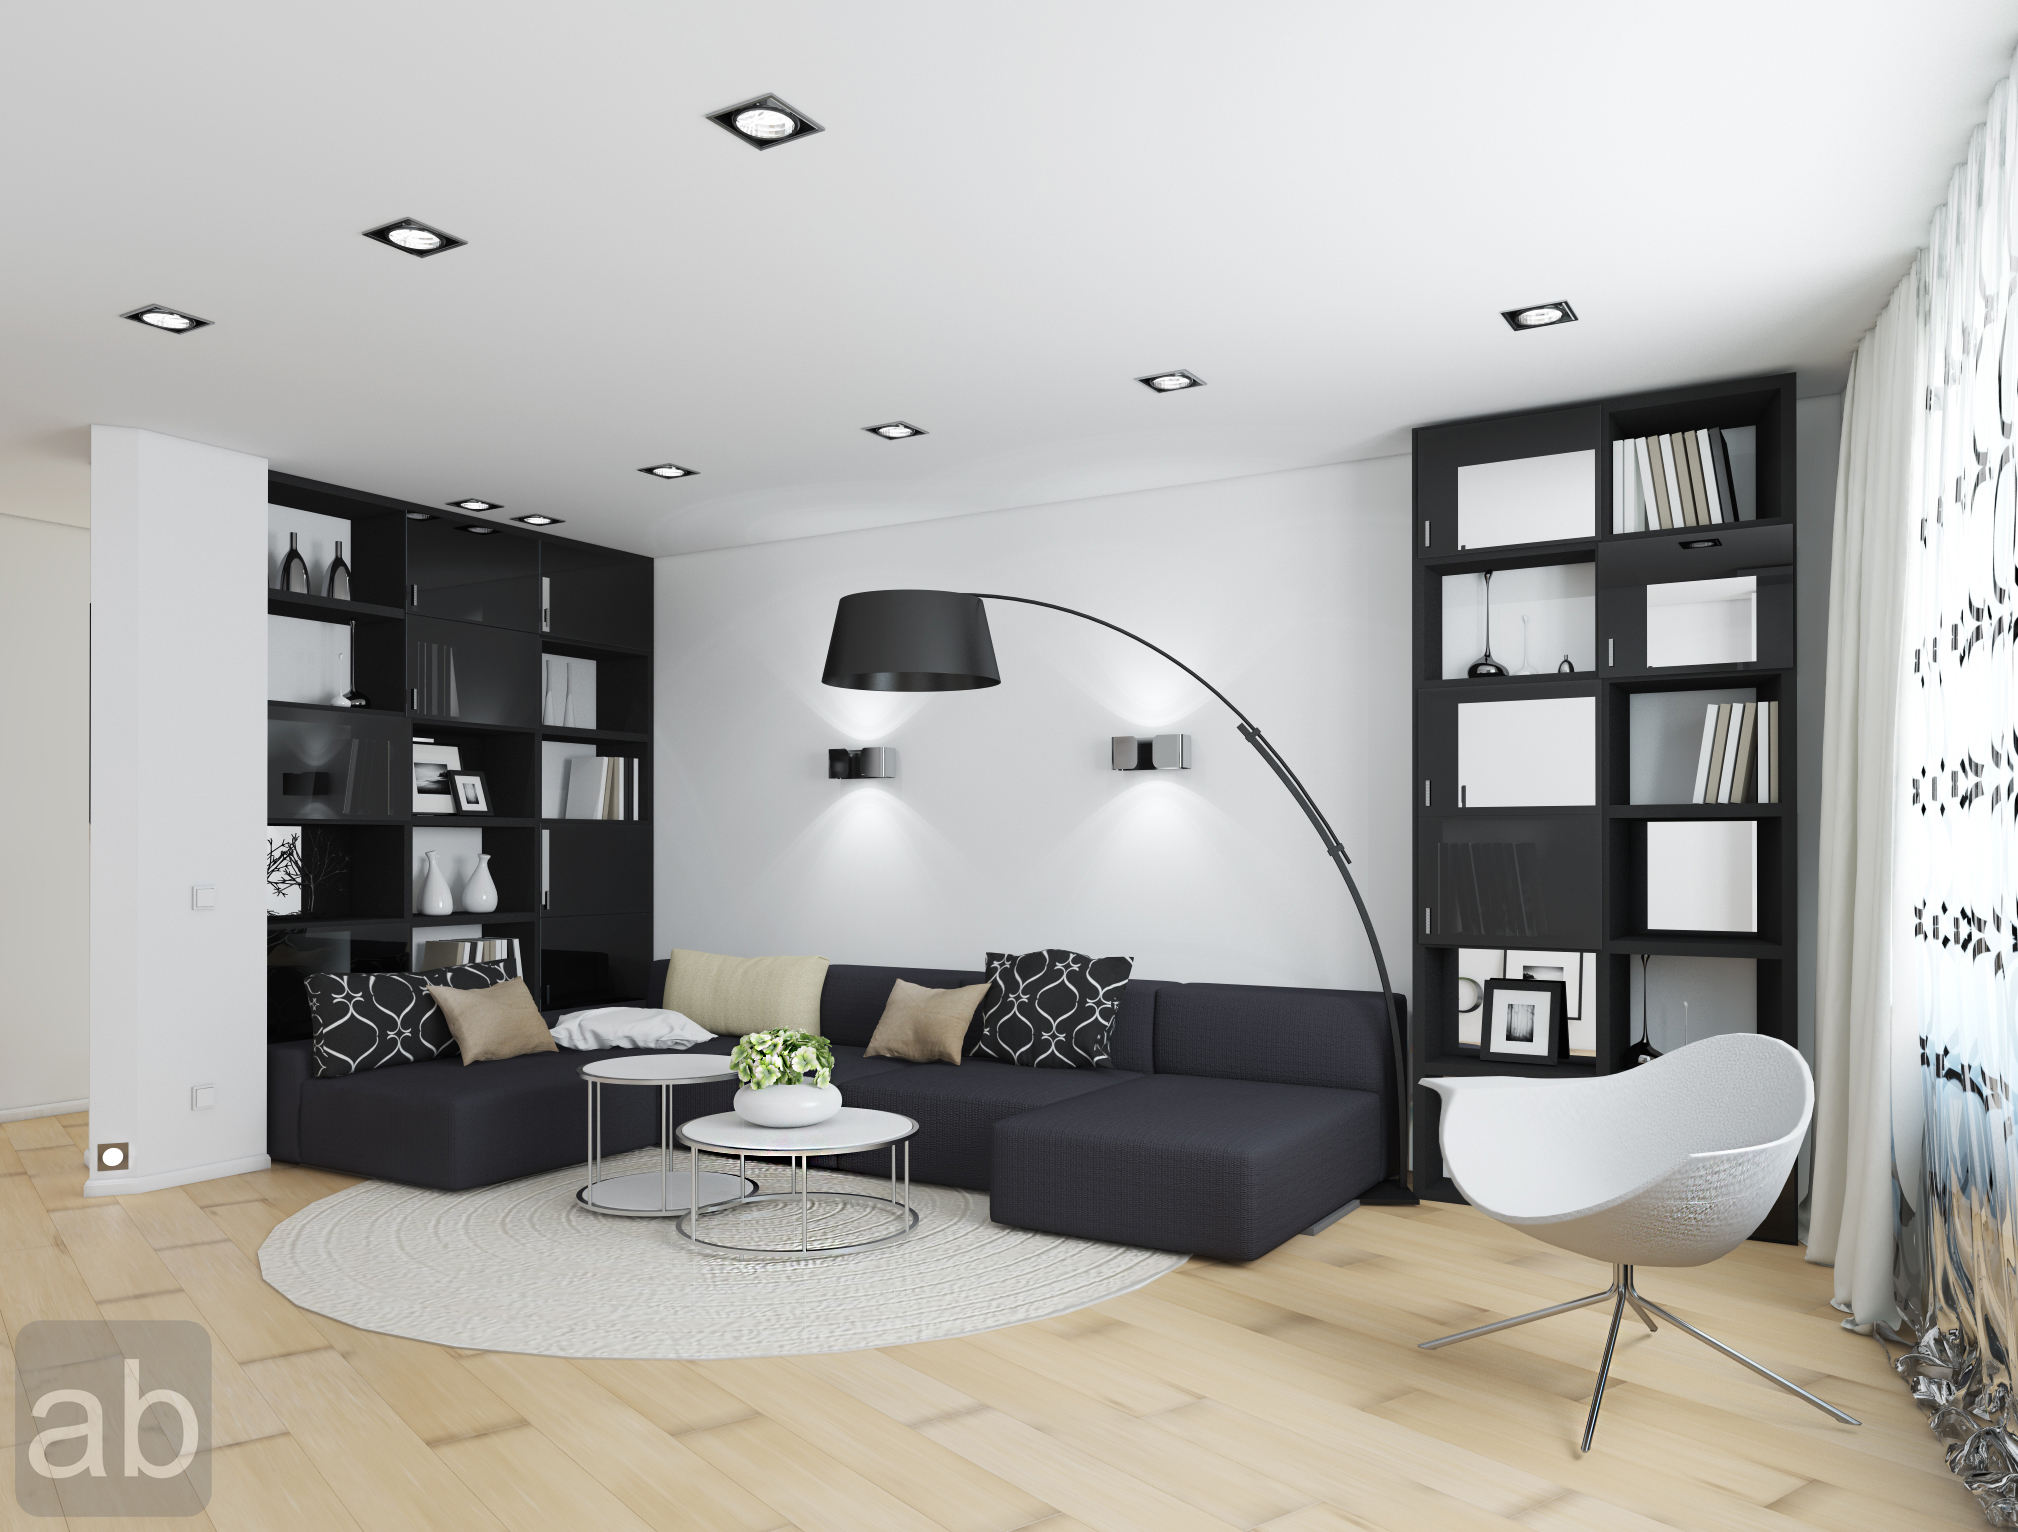 White and Black living room design